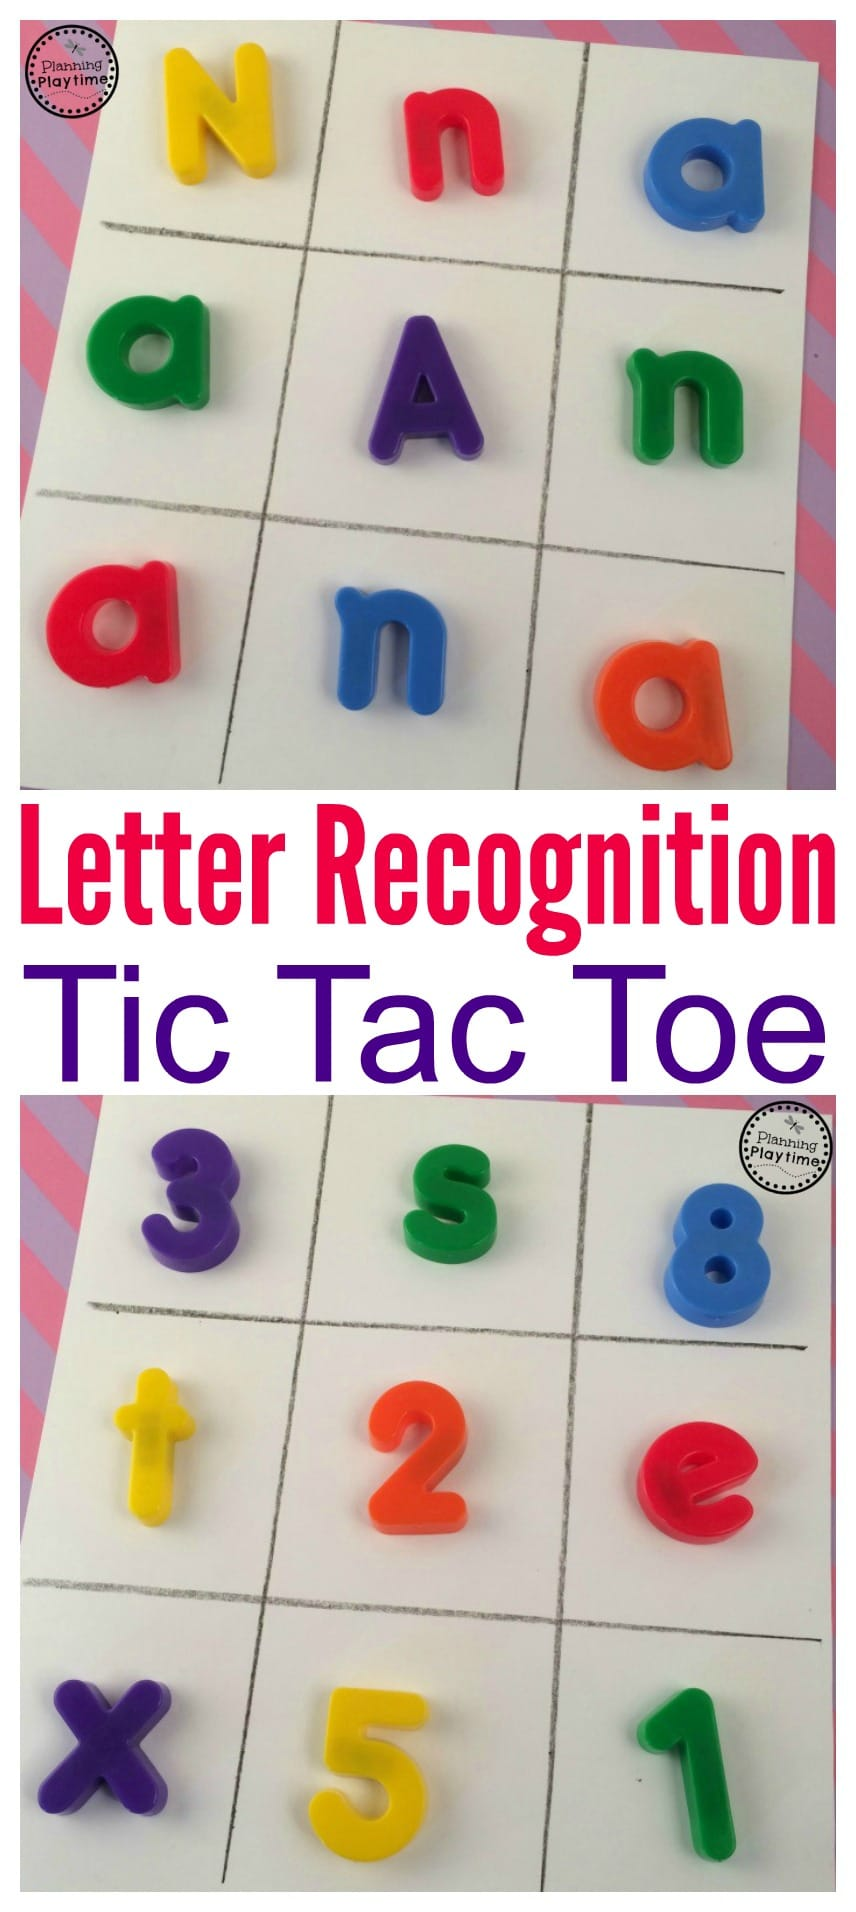 Letter Recognition Ti c Tac Toe